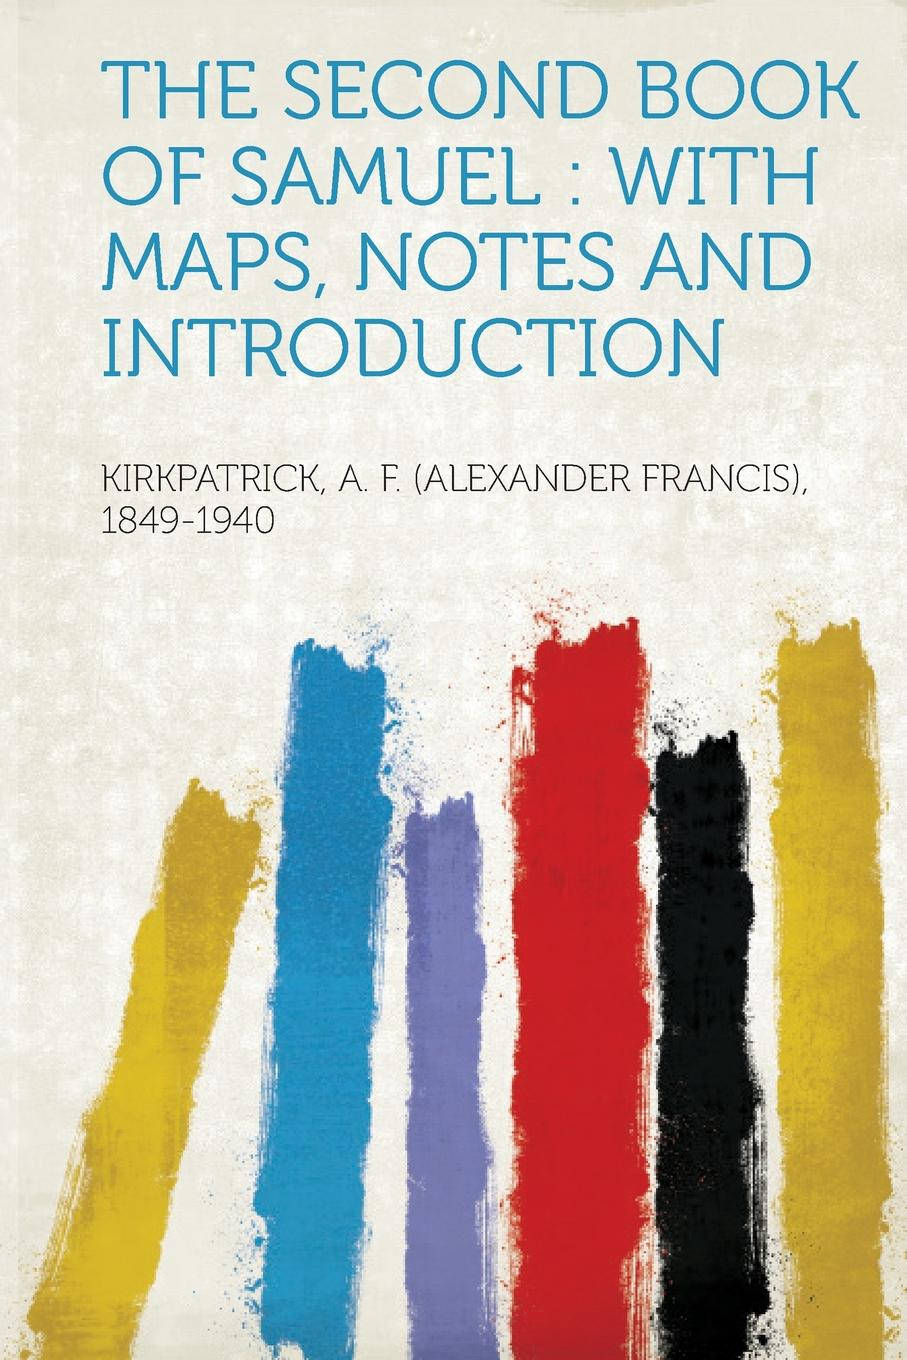 The Second Book of Samuel. With Maps, Notes and Introduction